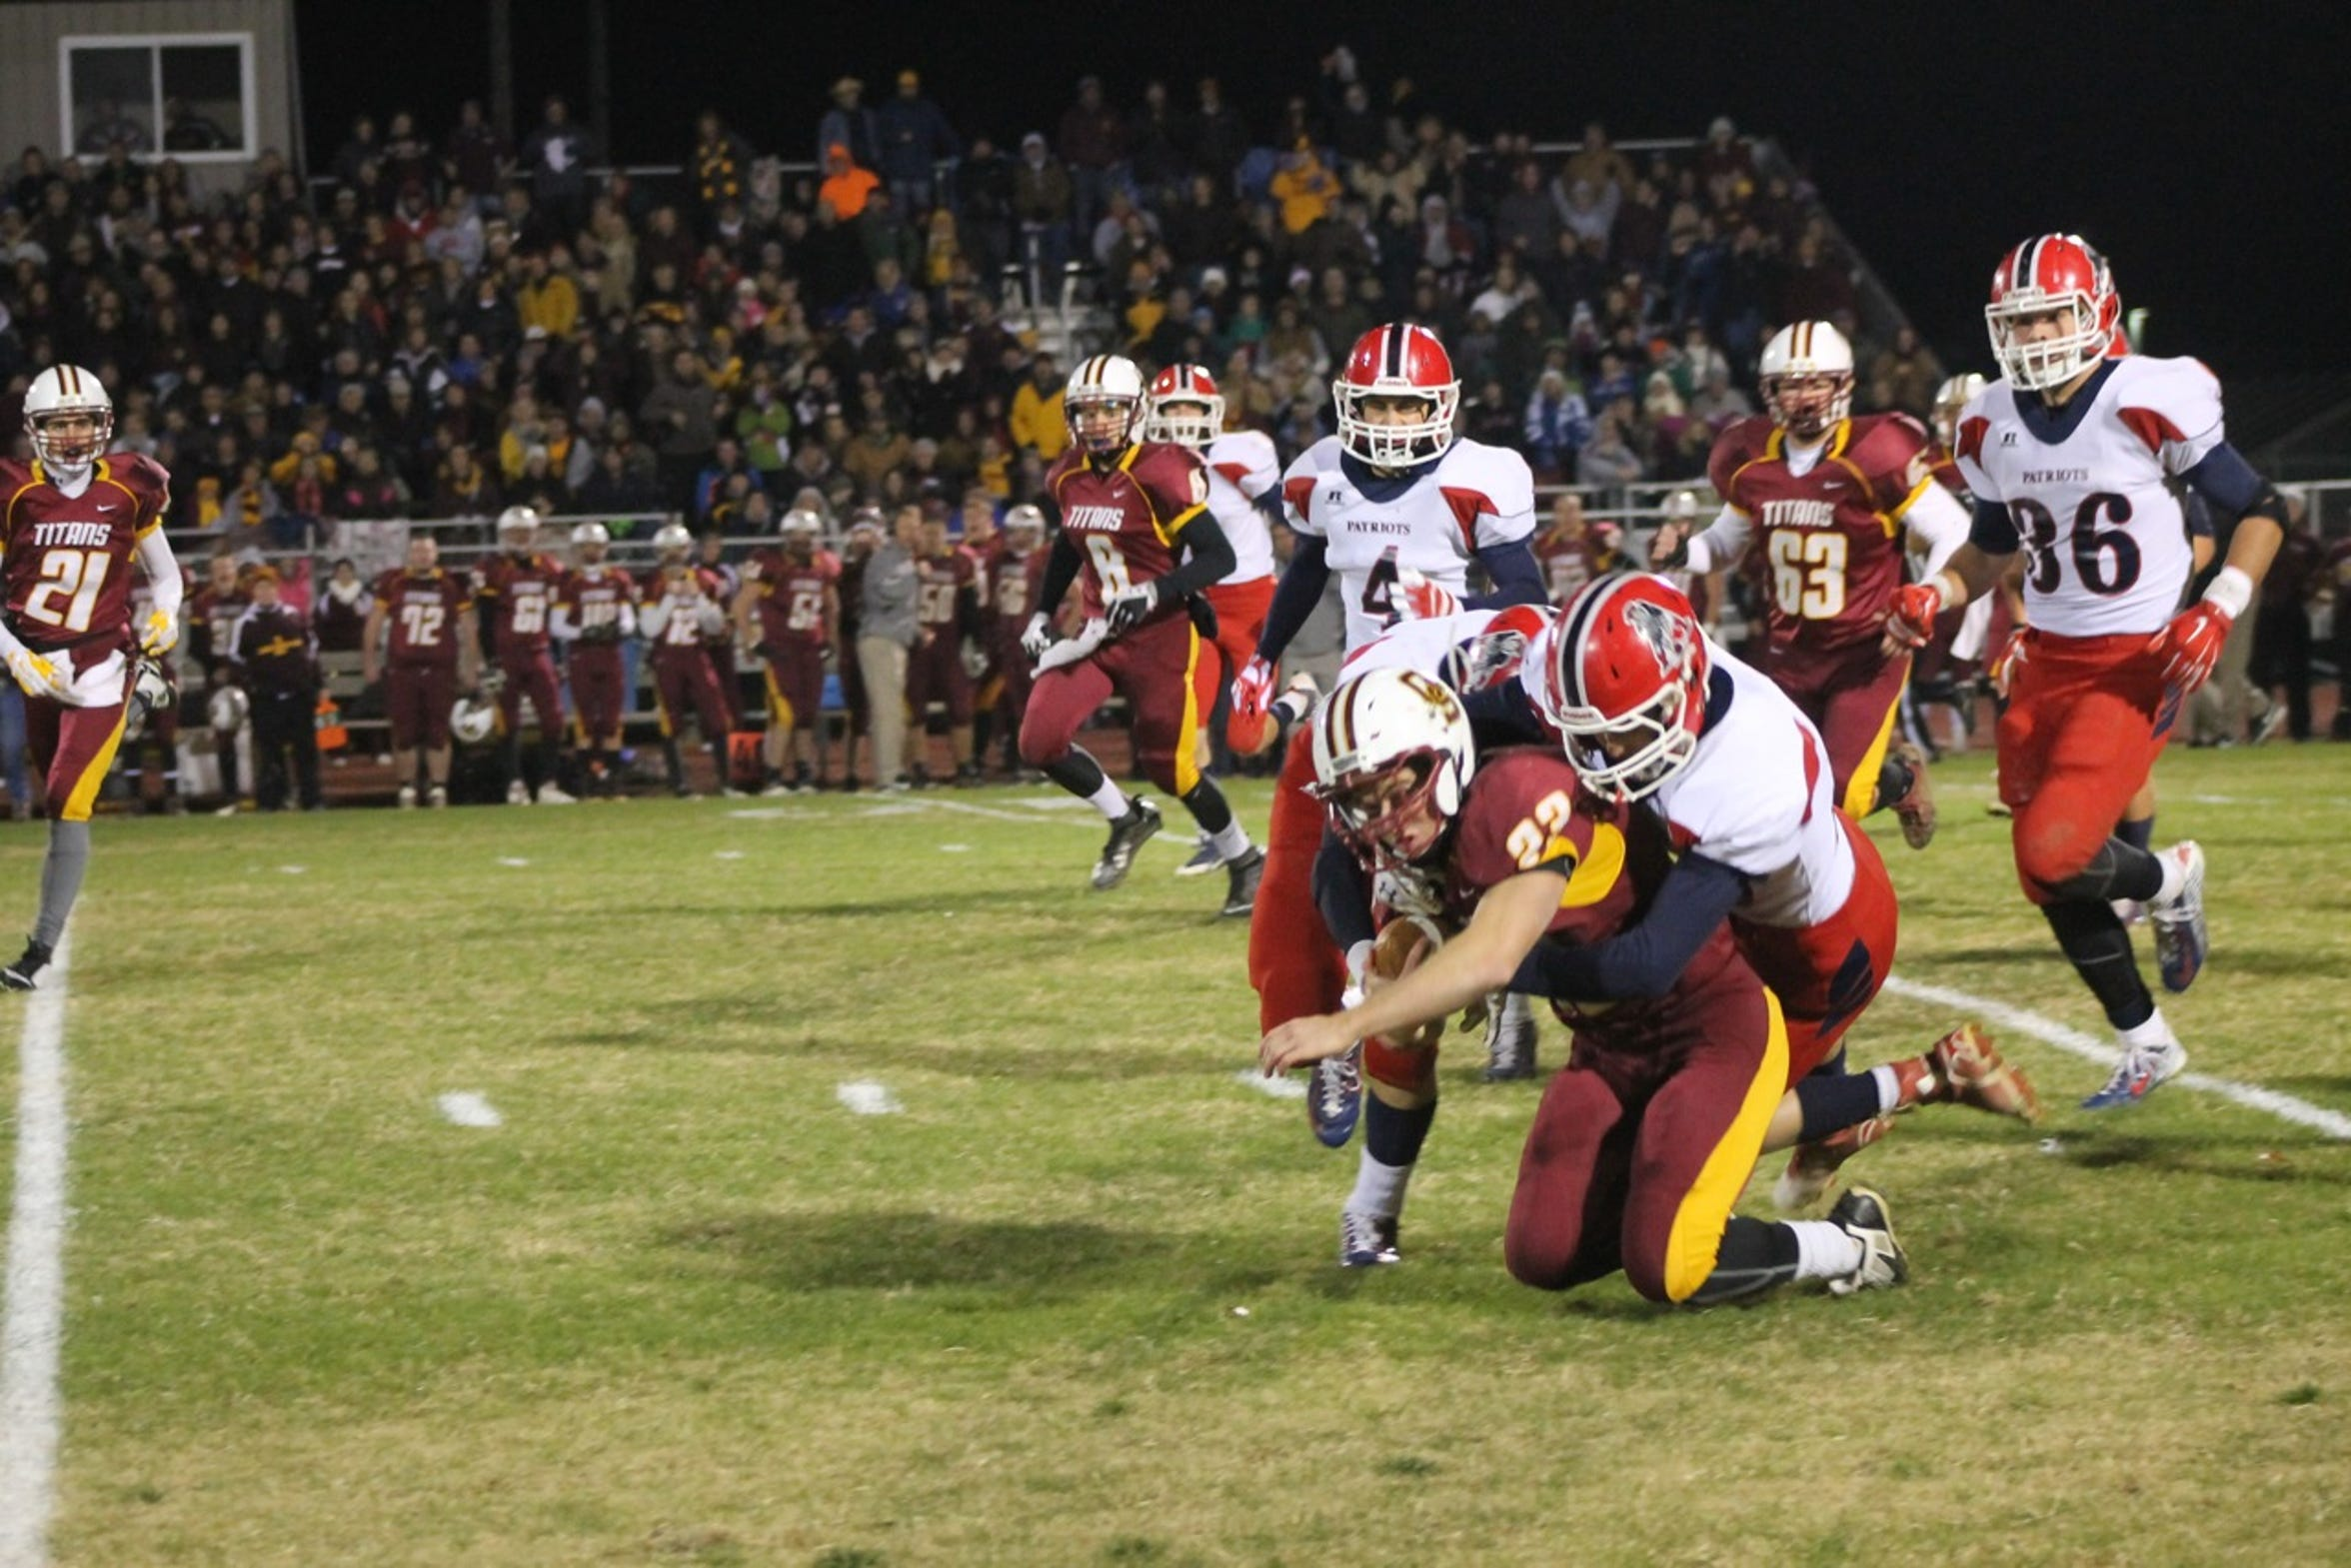 Gibson Southern's Cody Pohl is tackled by a pair of Heritage Hills defenders in the Class 3A Sectional 32 championship game on Nov. 7, 2014 in Fort Branch, Ind. Heritage Hills won, 14-13.